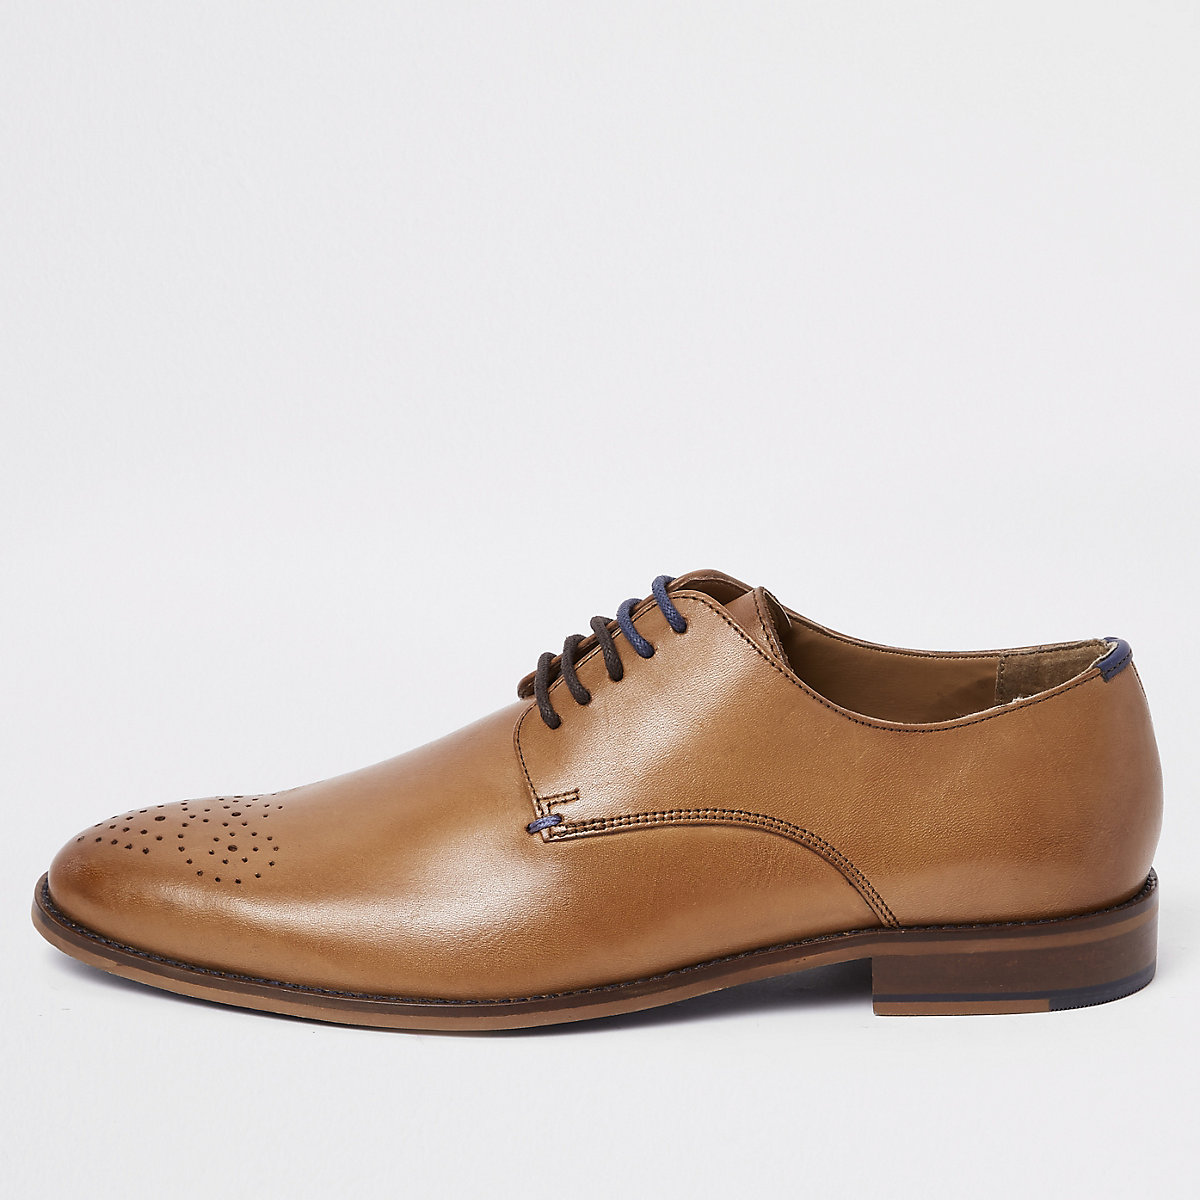 Tan leather lace-up sprayed toe derby shoes